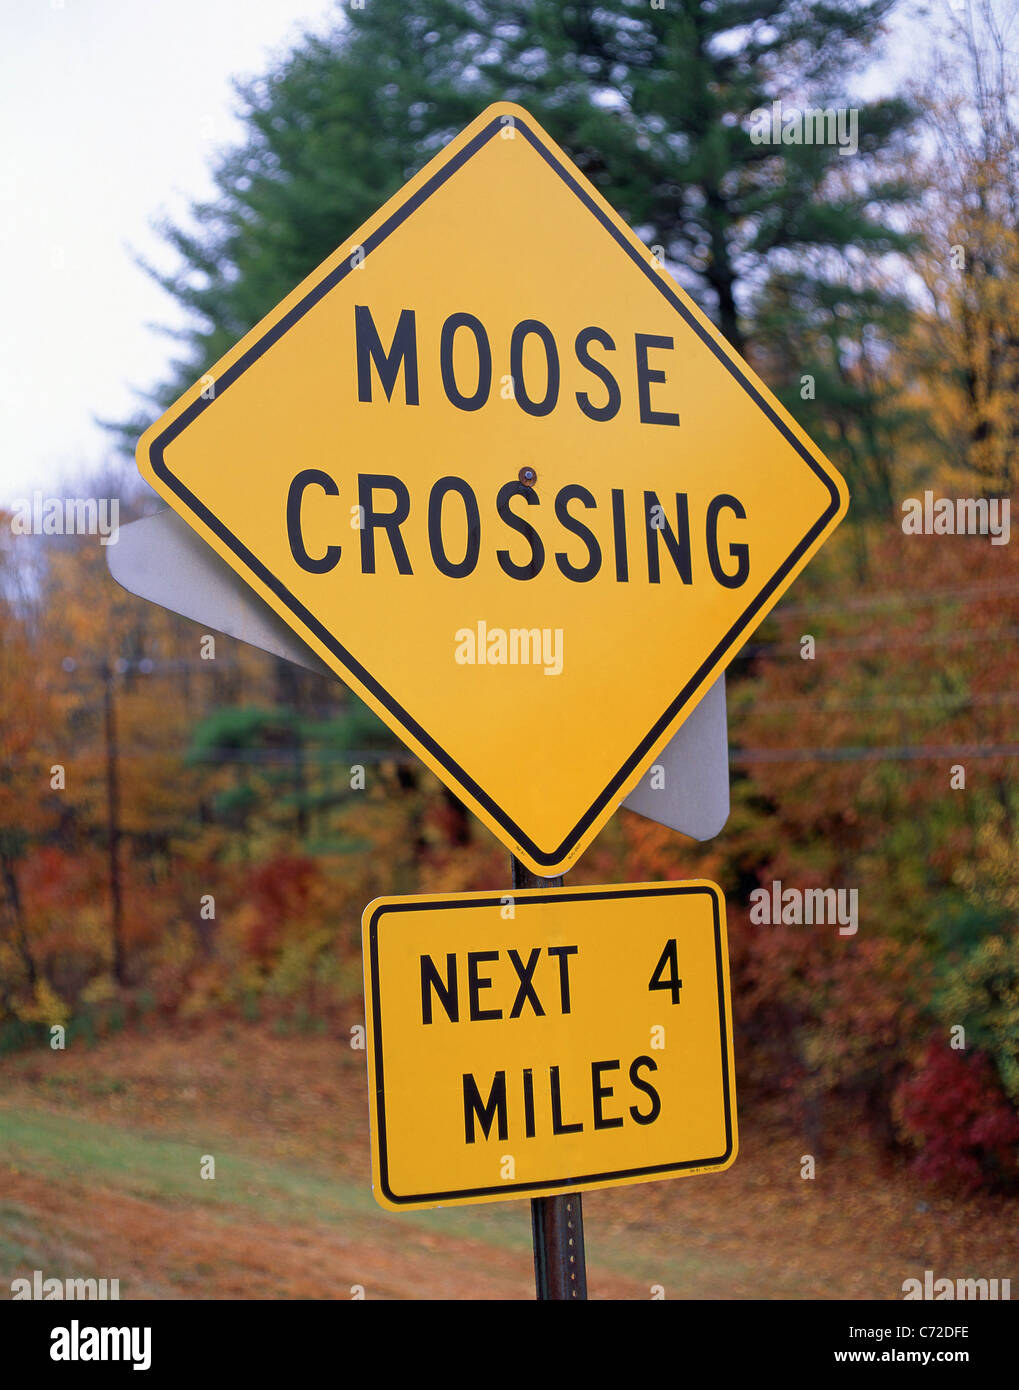 Moose crossing sign by roadside in fall, Massachusetts, United States of America - Stock Image